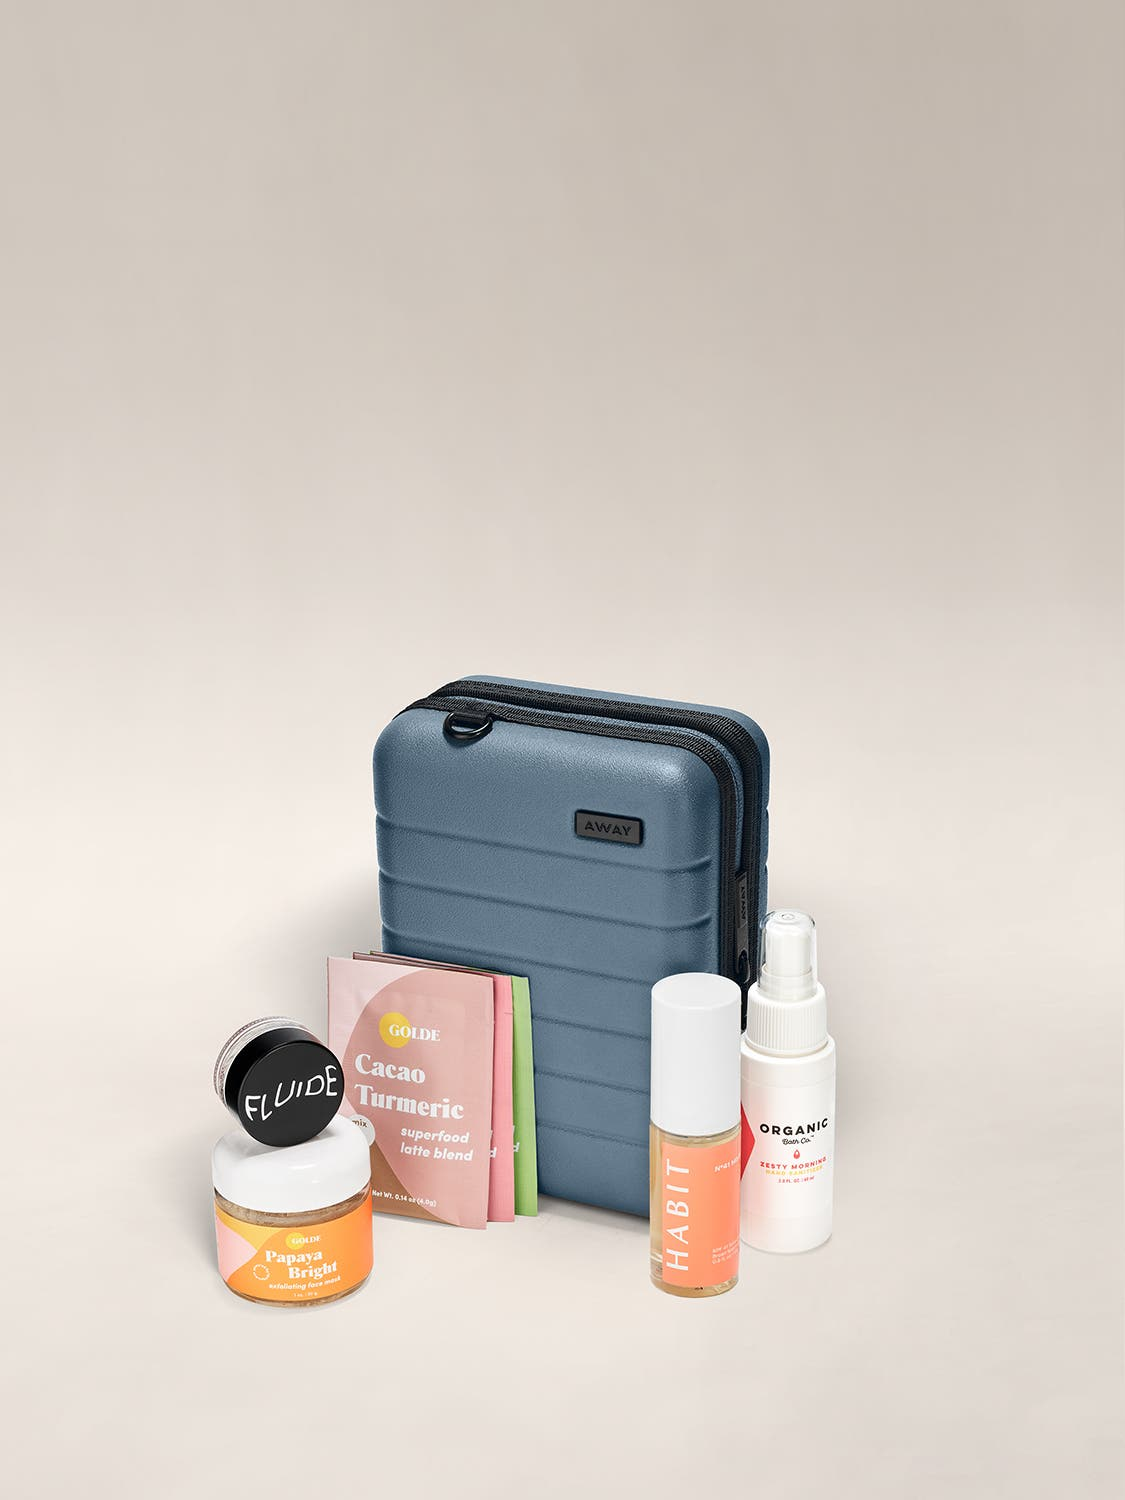 The Boost Set Mini shown with various products